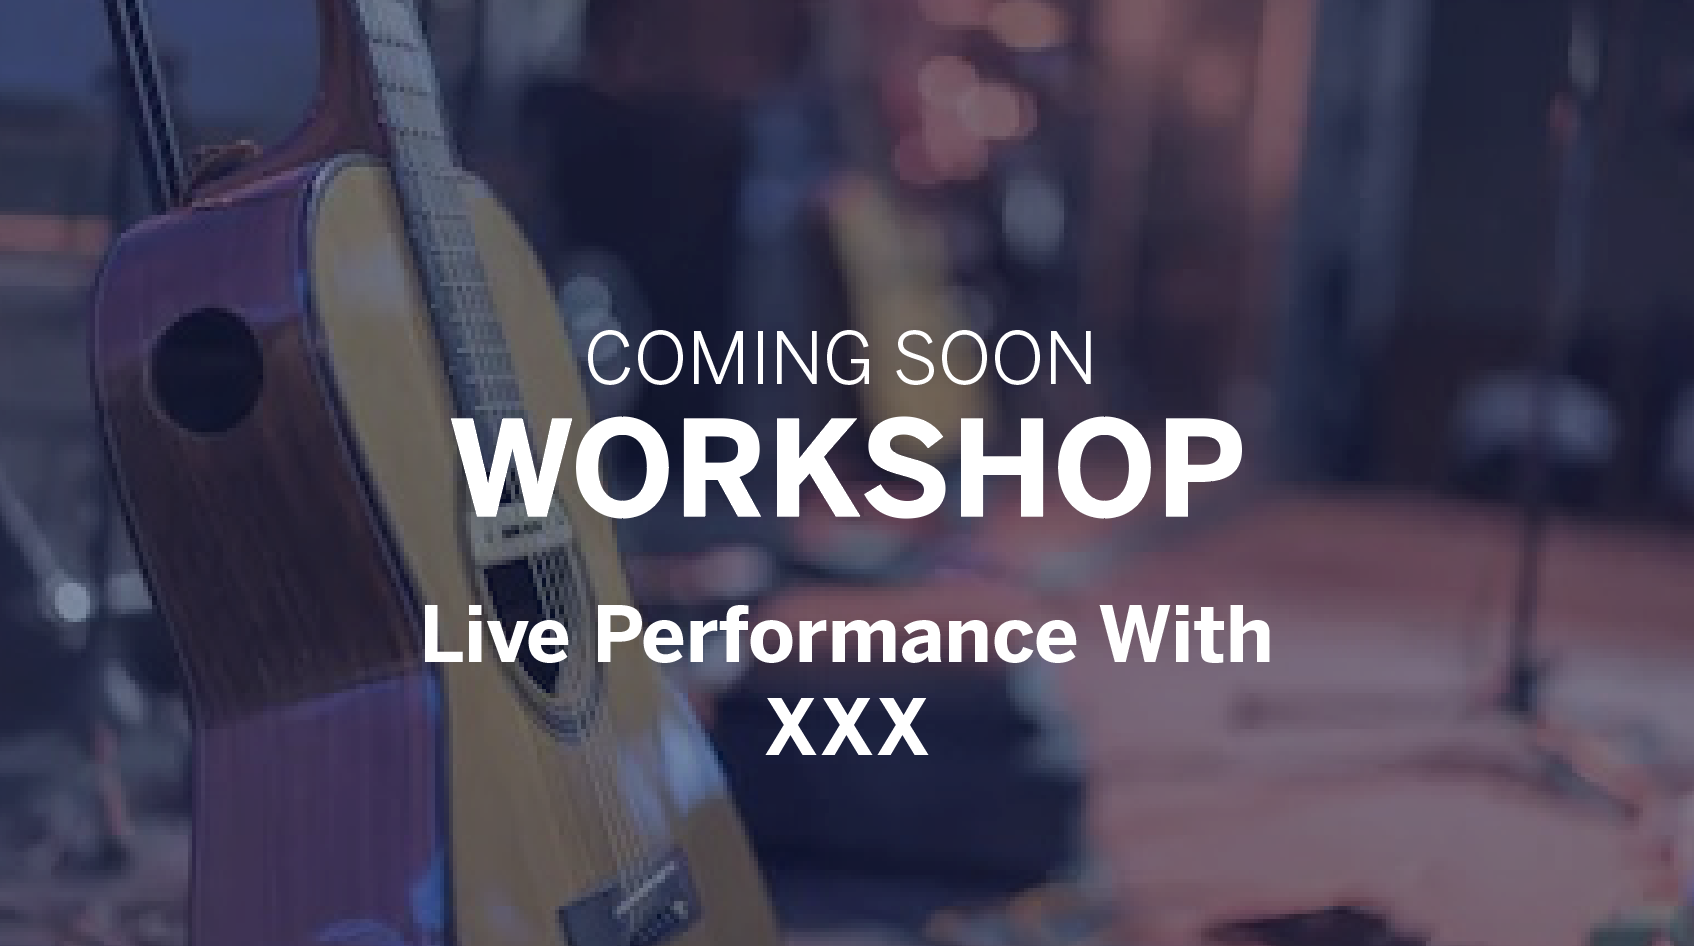 Workshop - Live Performance With XXX